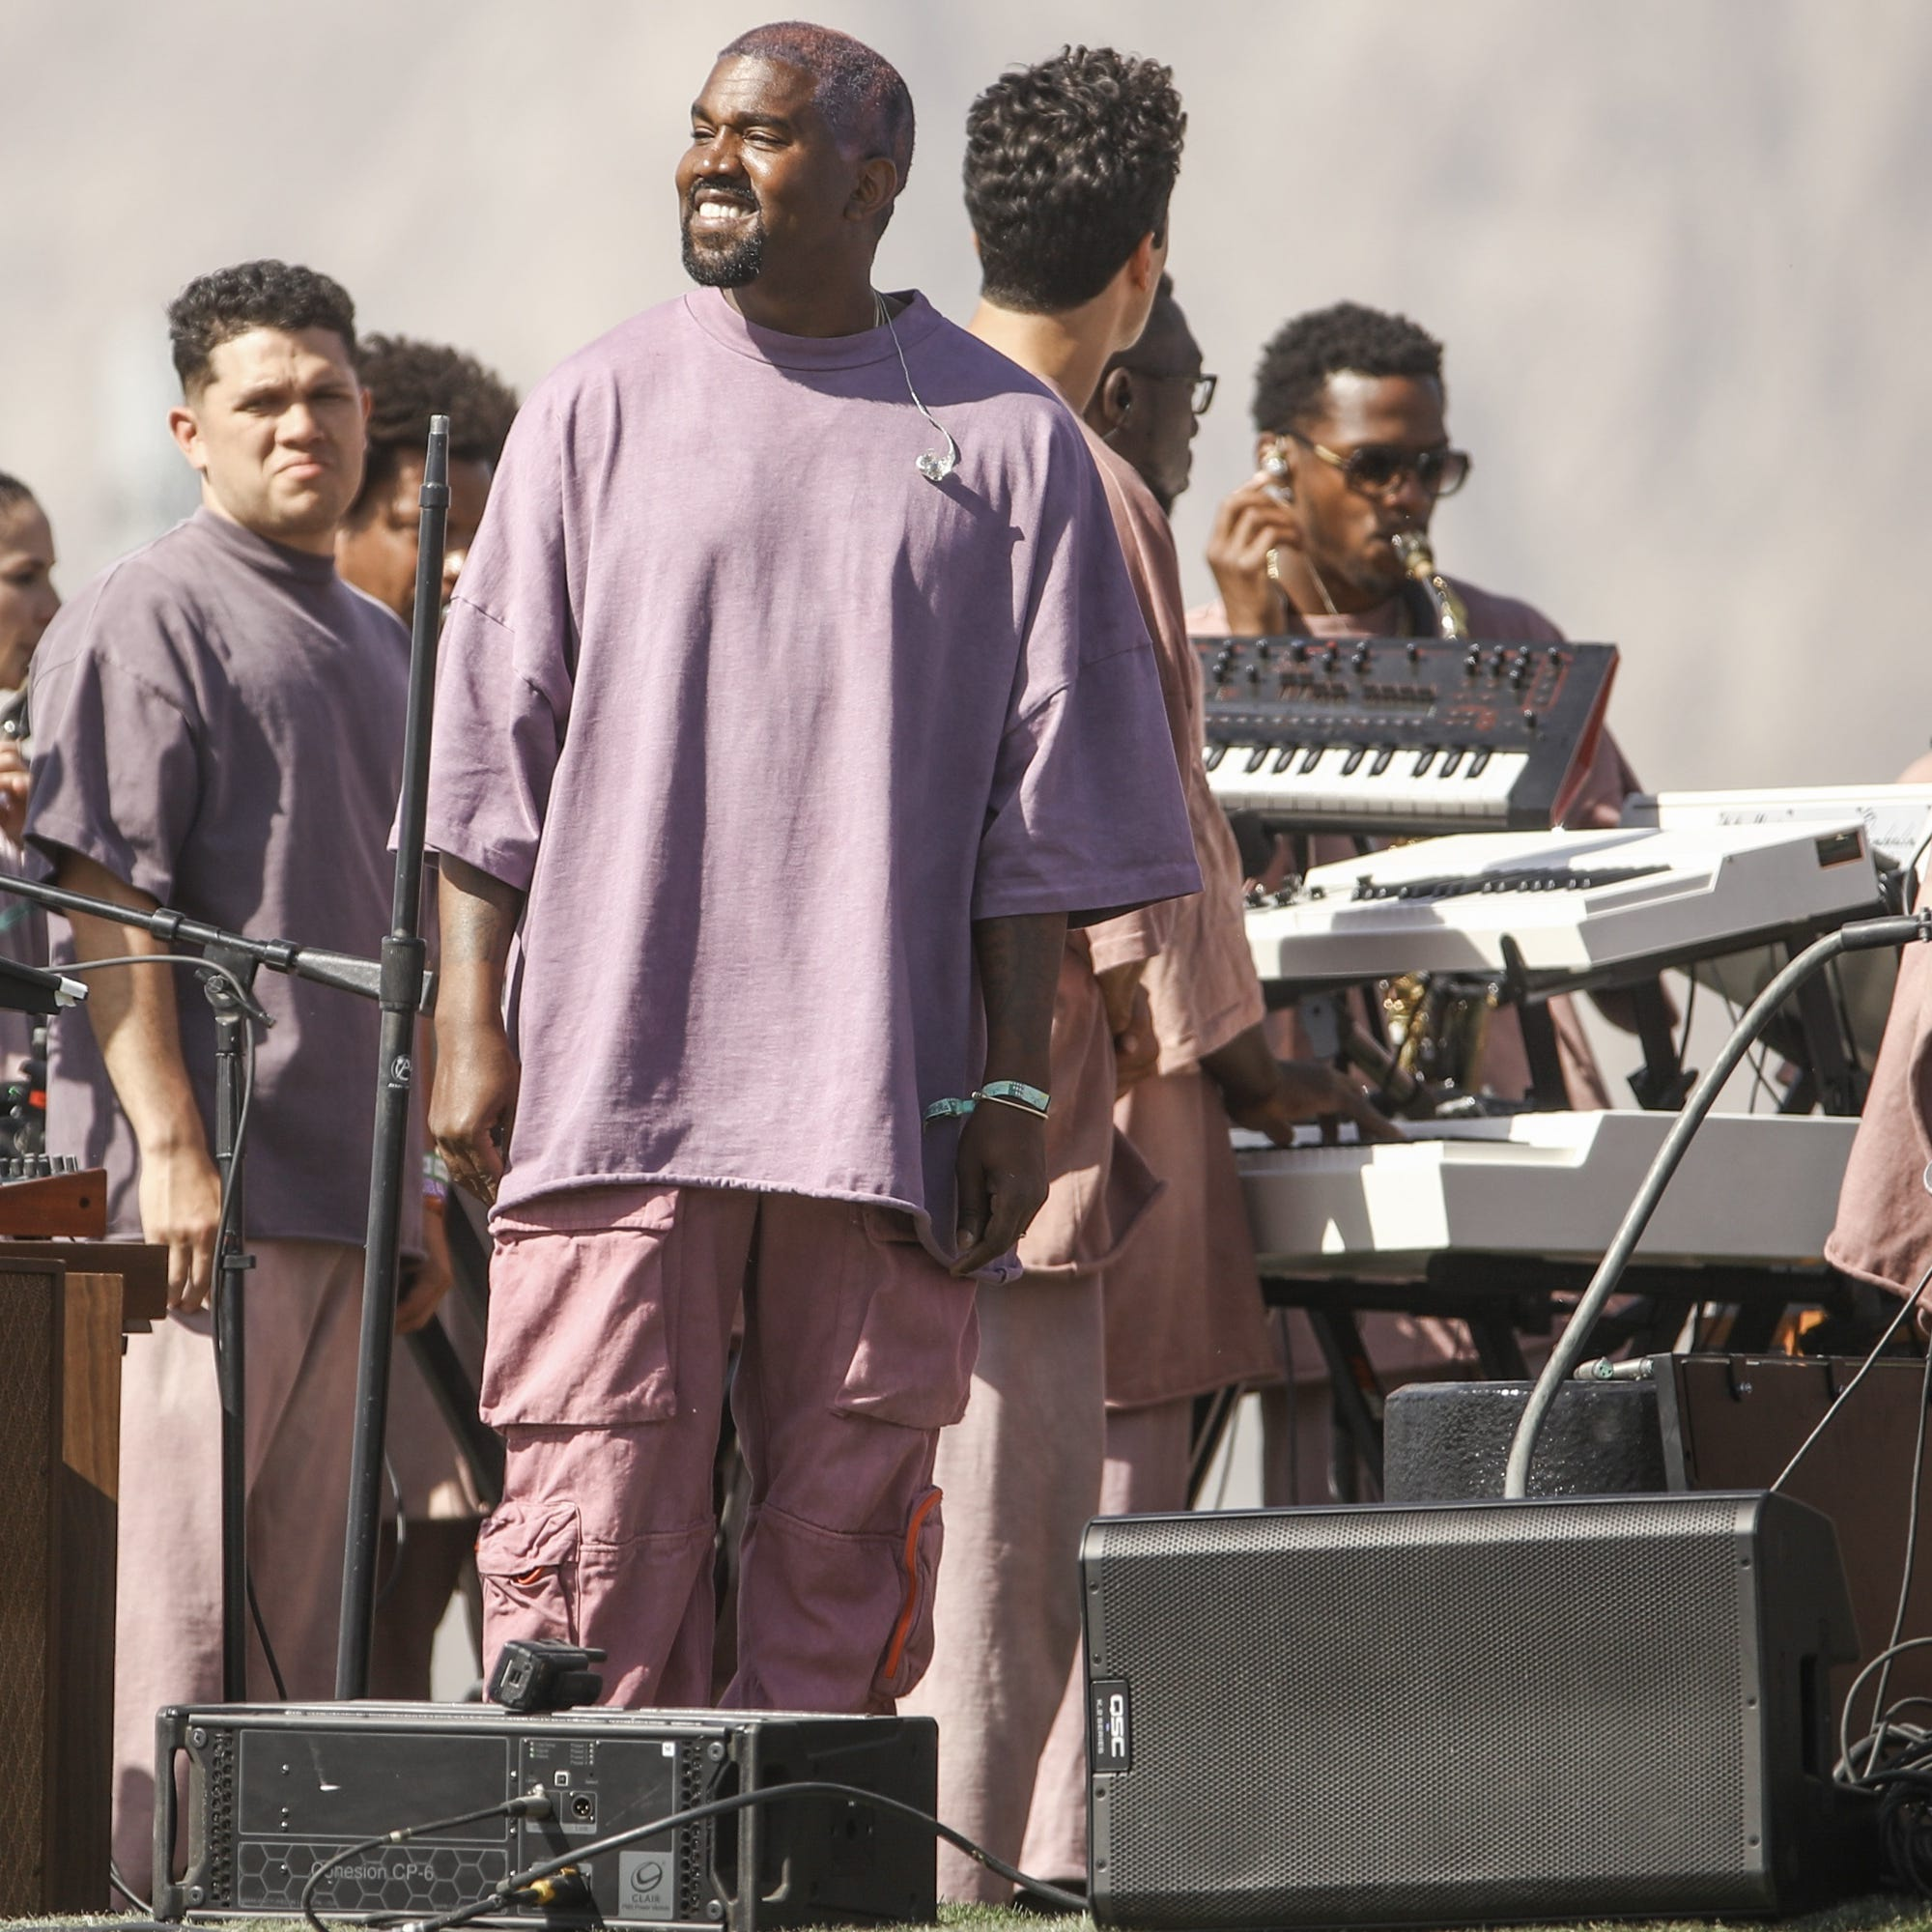 Kanye West paid $9K to rehearse at CVHS for Coachella Weekend 2